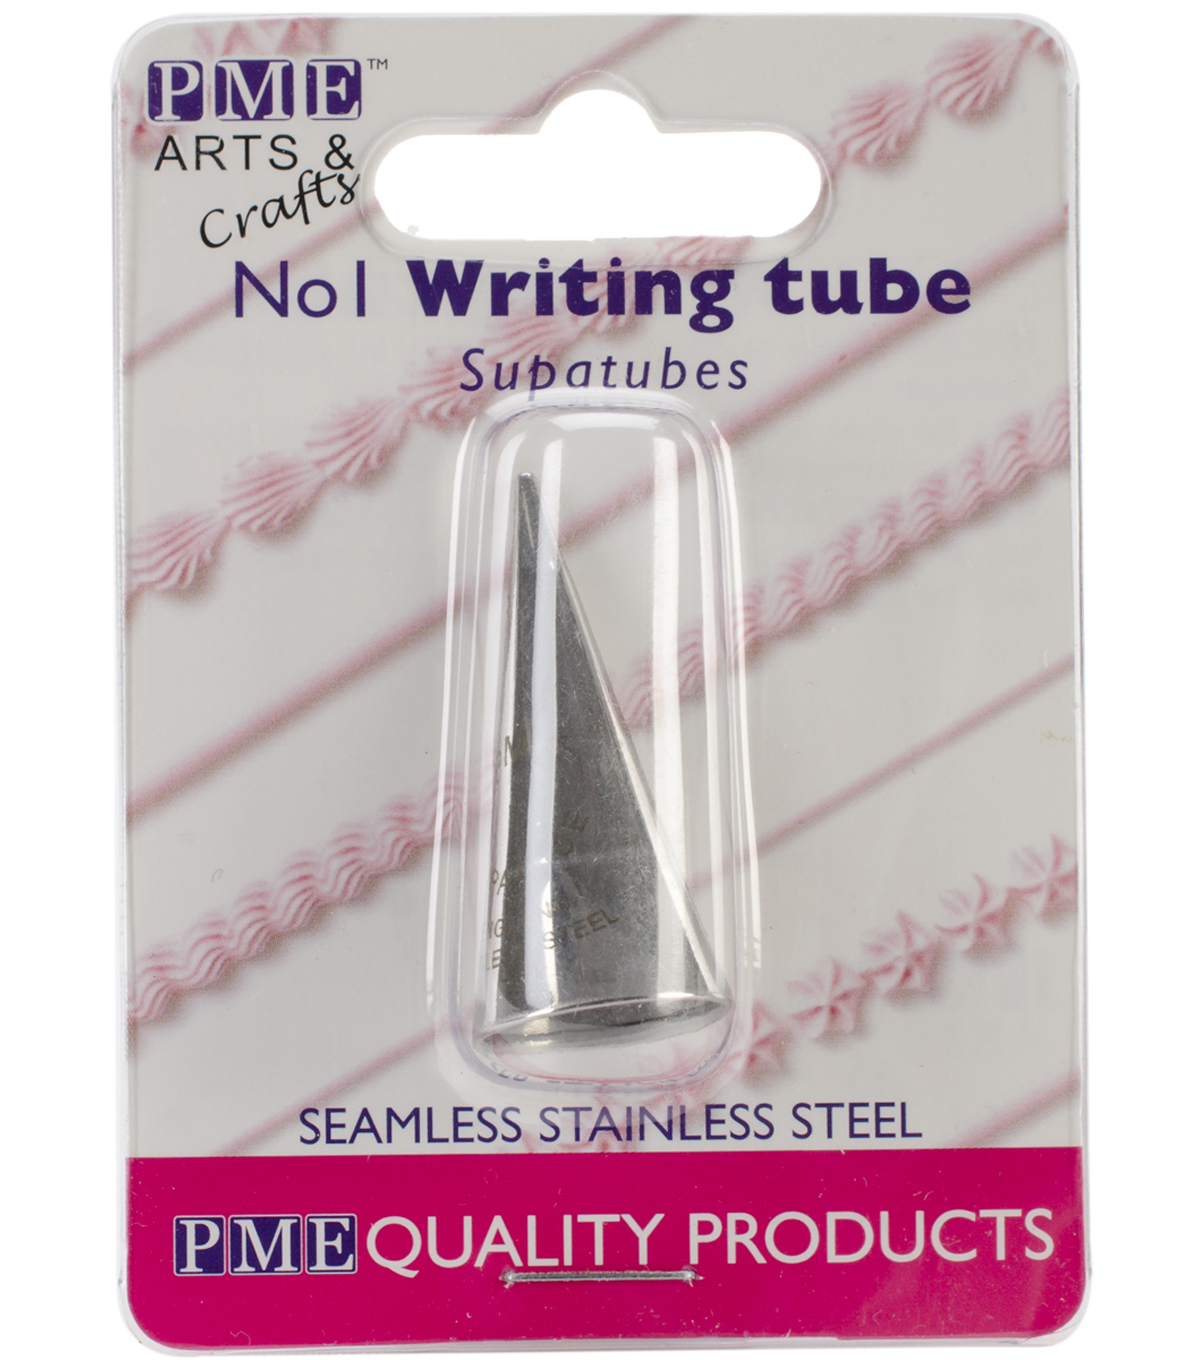 Seamless Stainless Steel Supatube-Writer #1